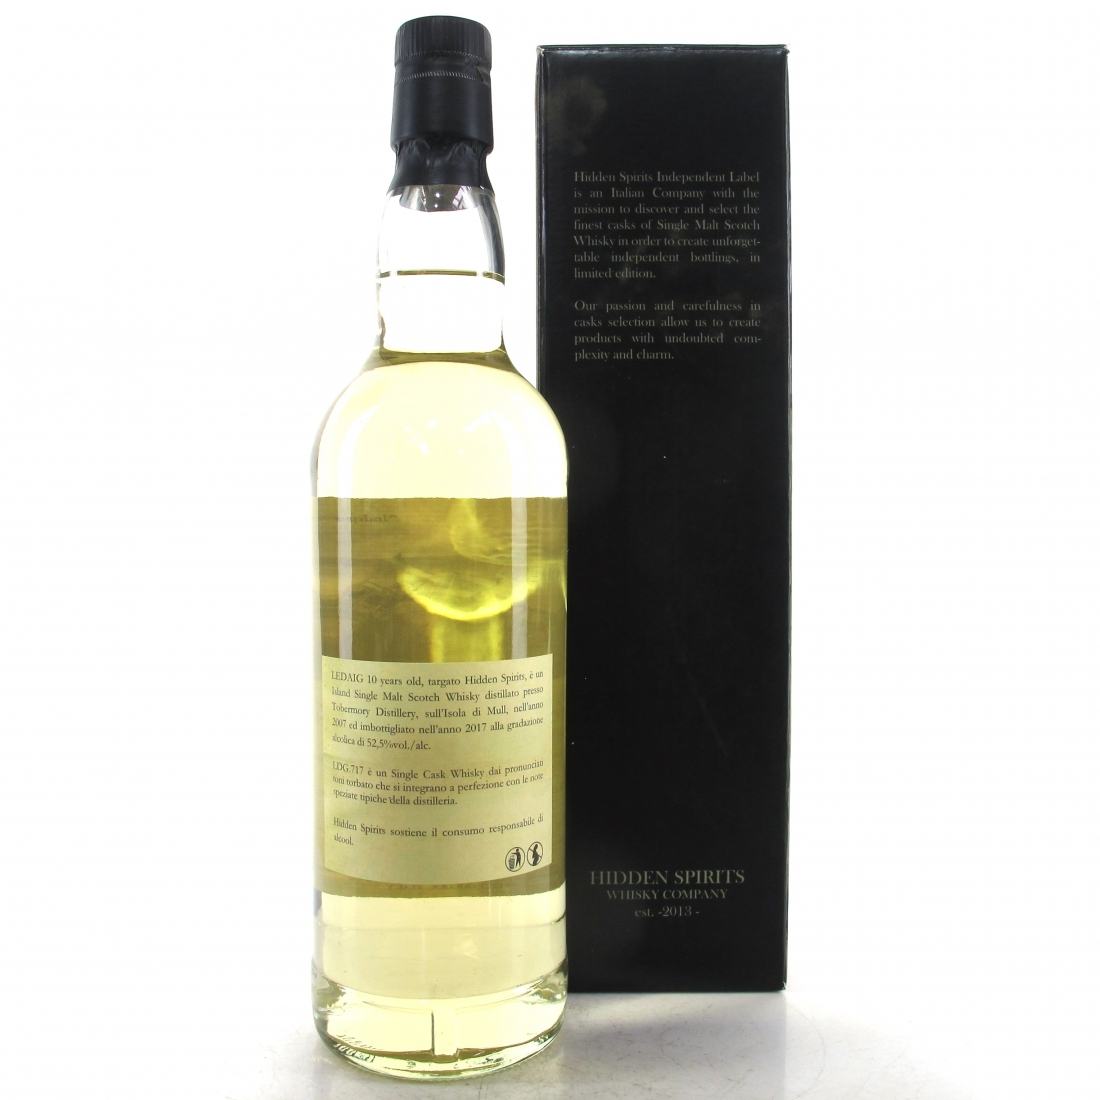 Ledaig 2007 Hidden Spirits 10 Year Old Single Cask